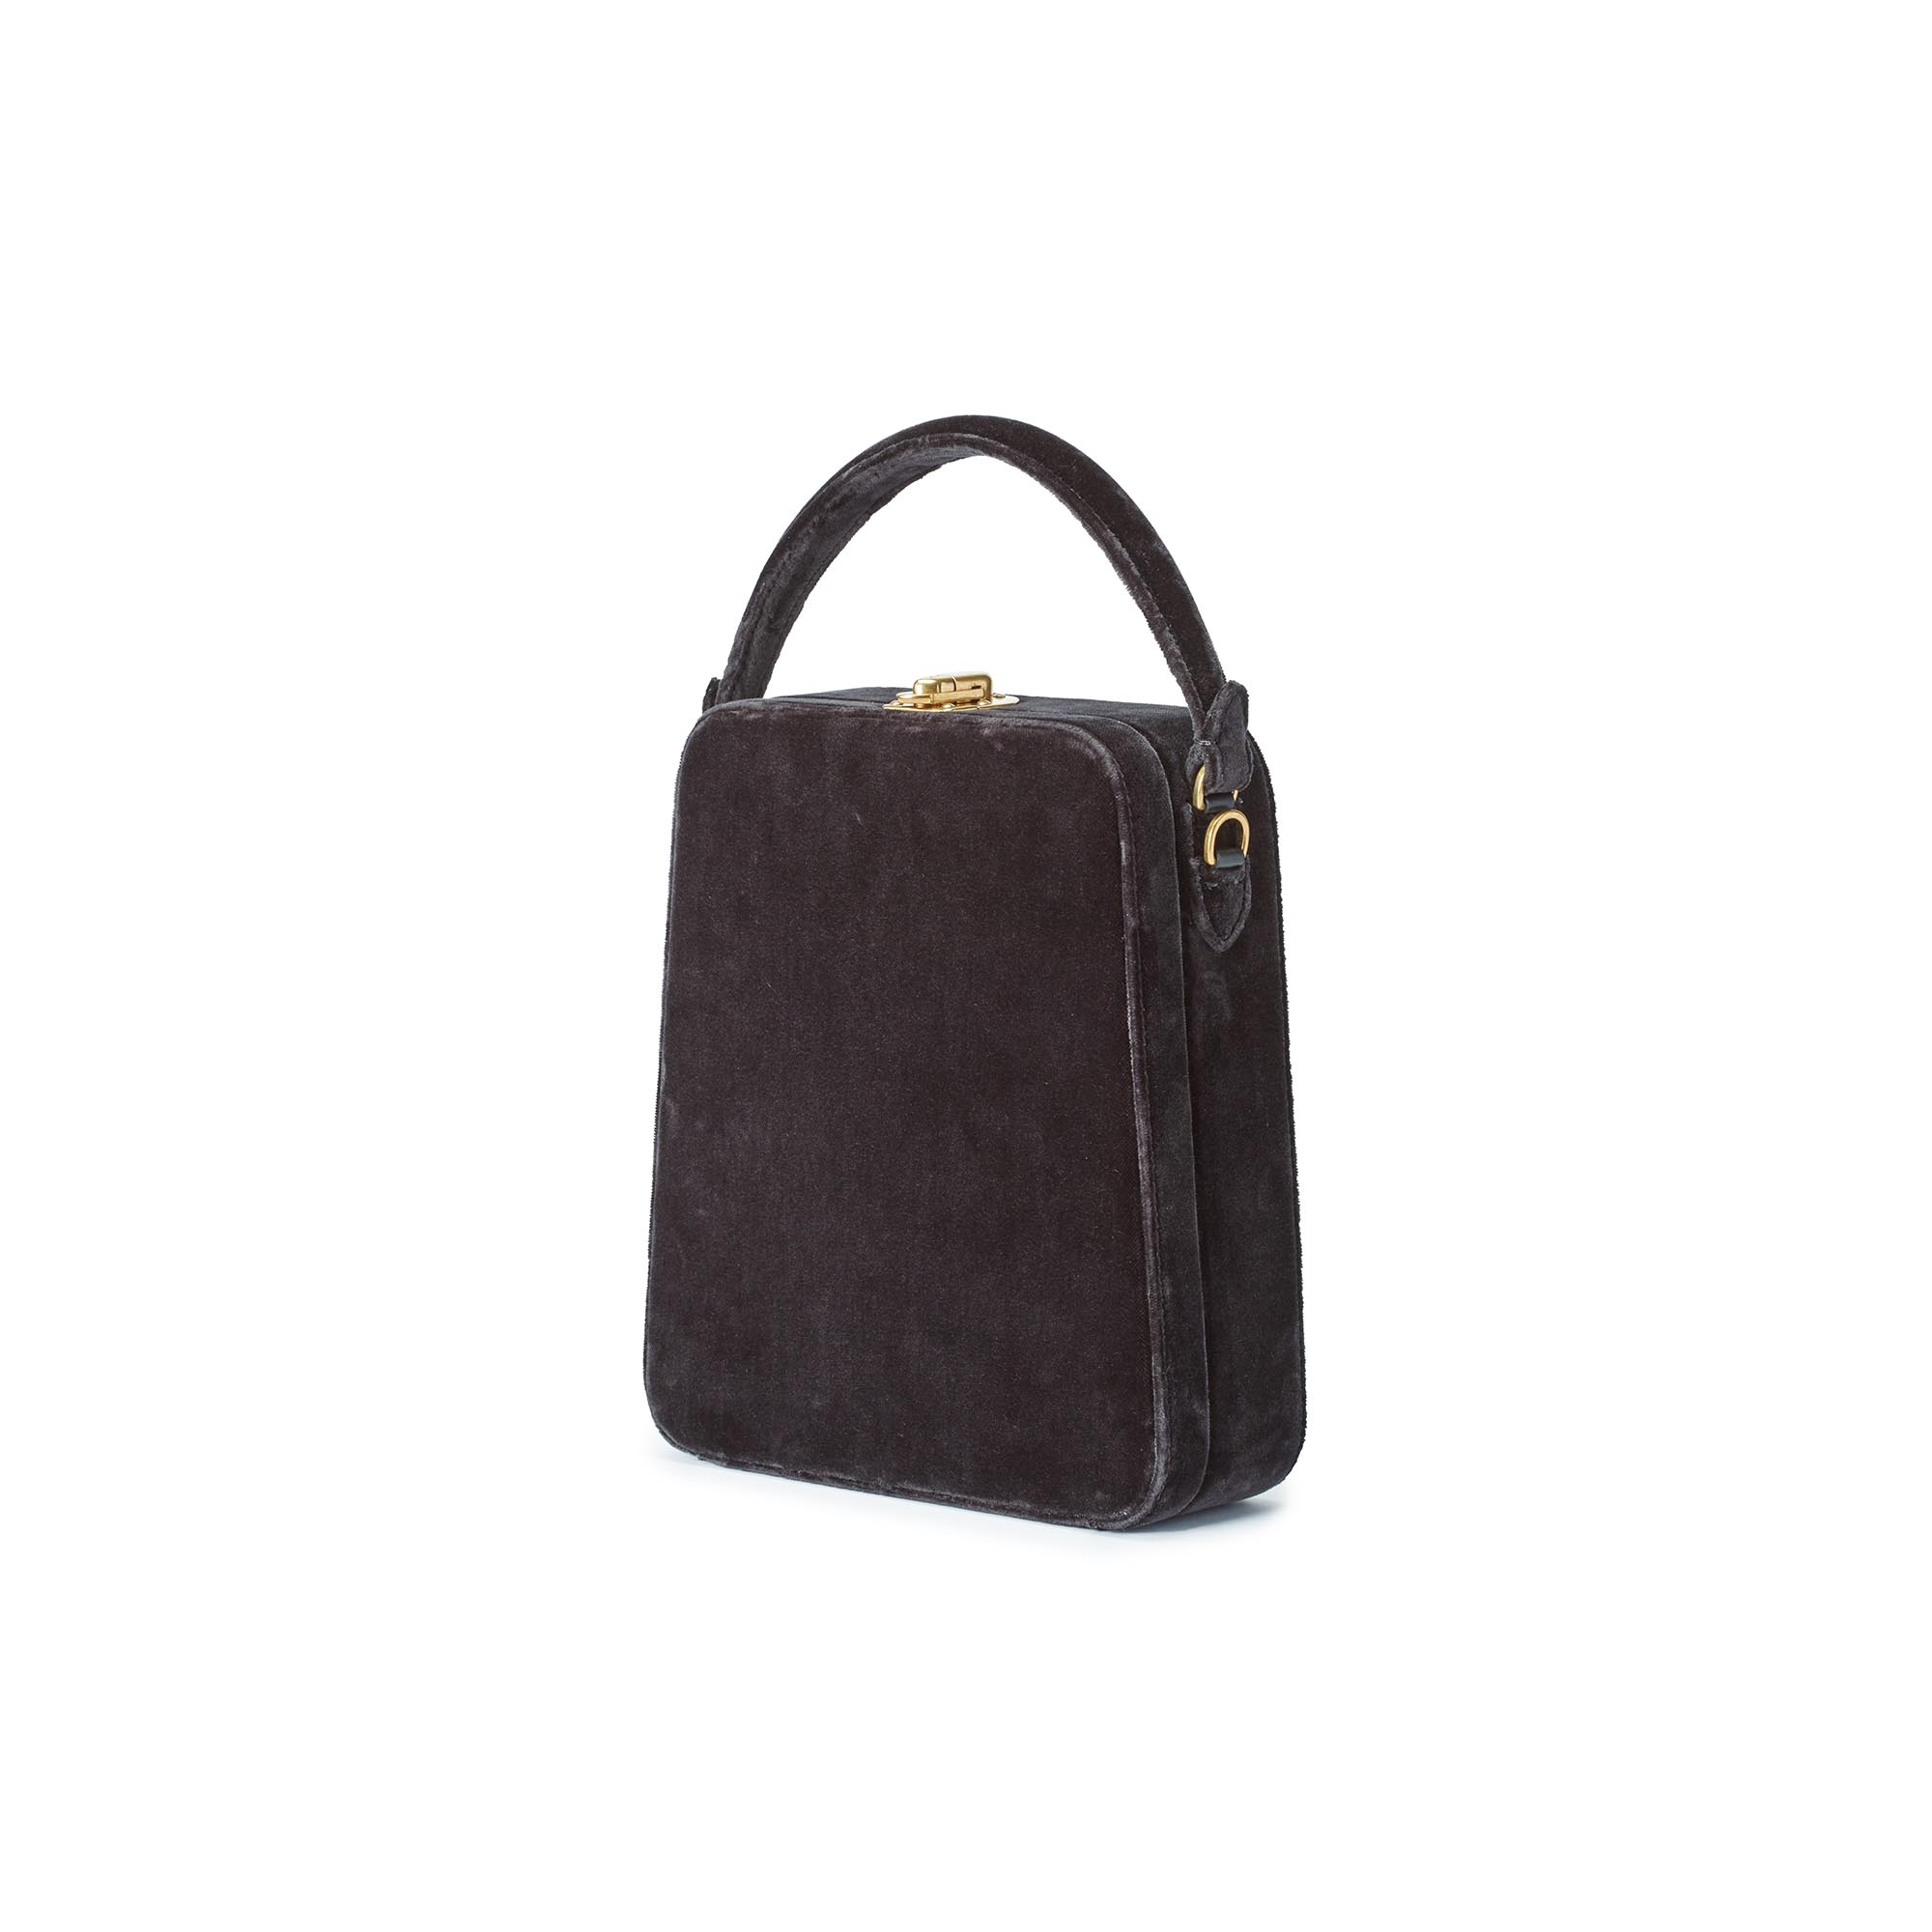 Tall-Bertoncina-charcoal-gray-velvet-bag-Bertoni-1949_02